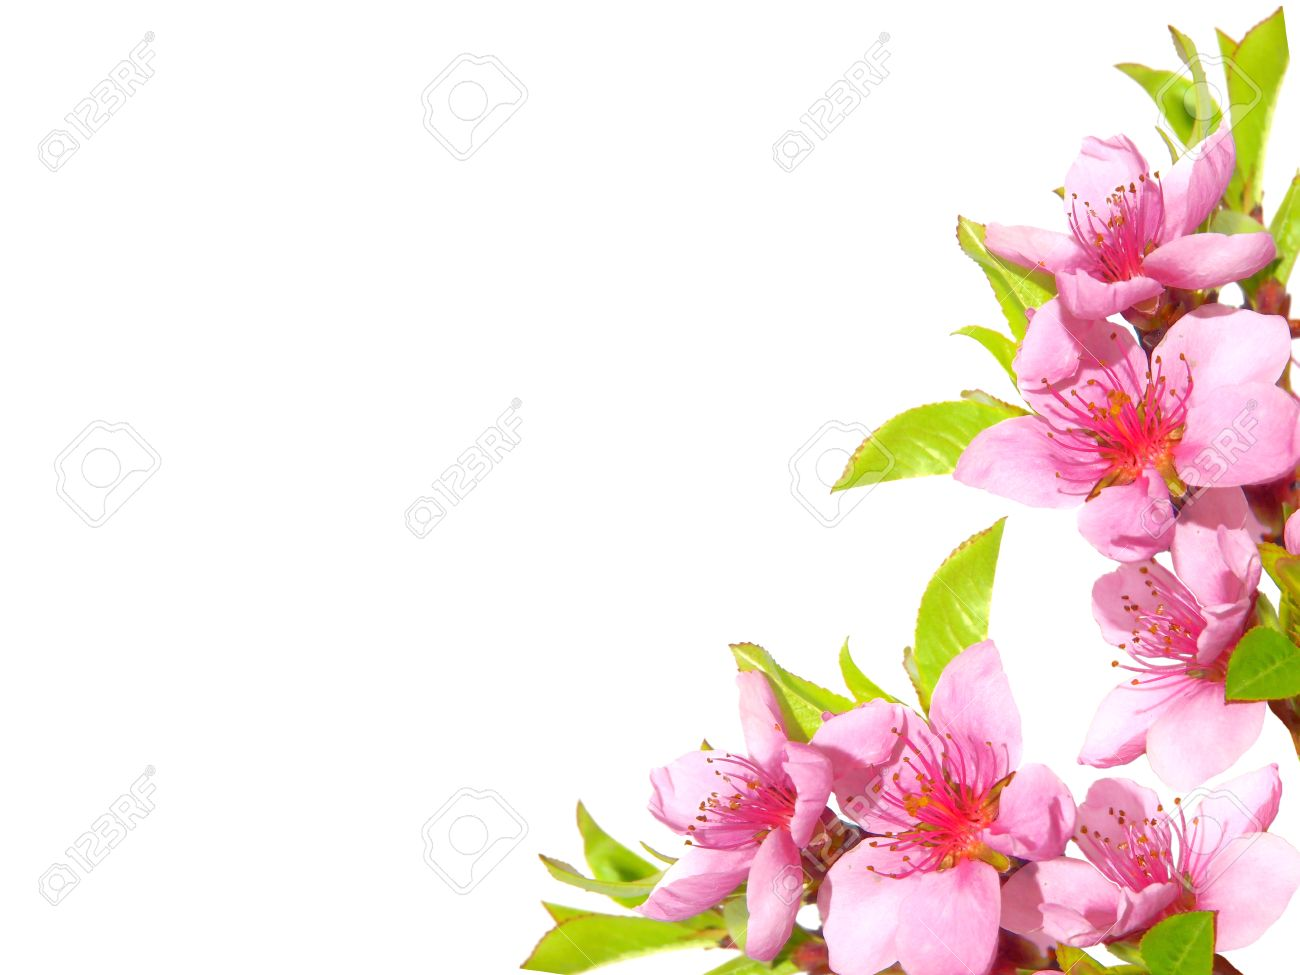 Pink Spring Flowers Border Stock Photo Picture And Royalty Free